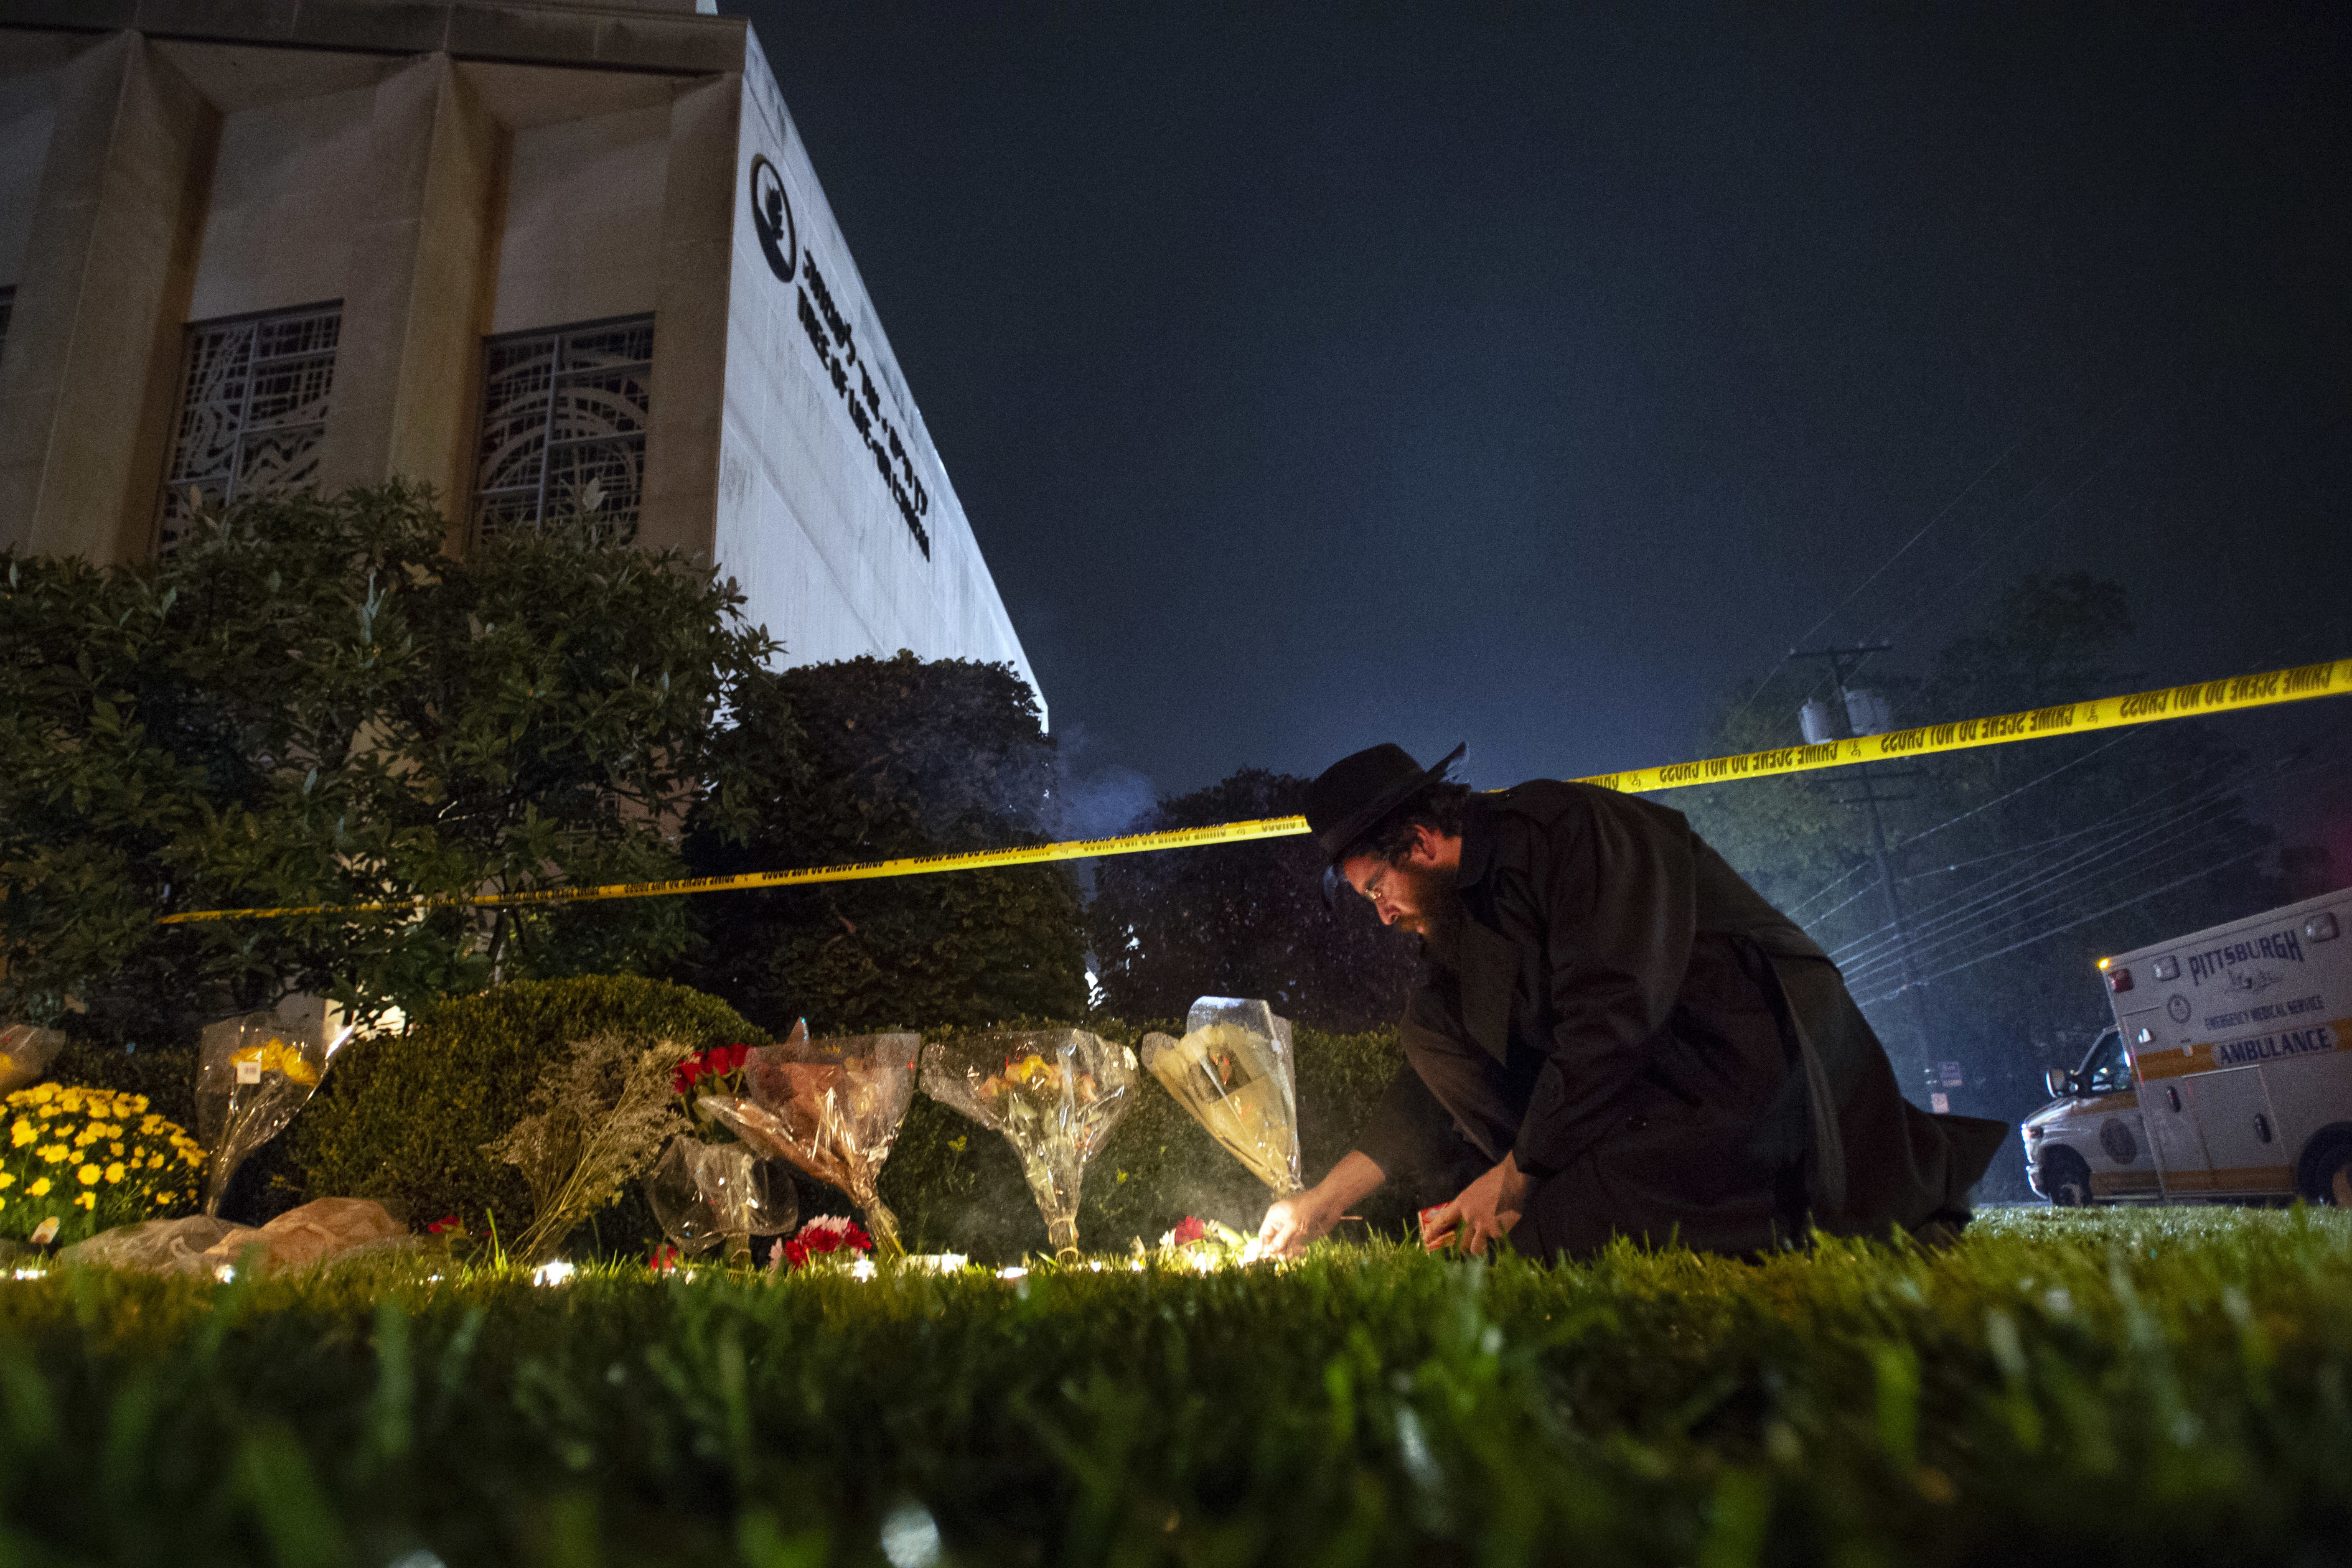 FILE - In this Oct. 27, 2018 photo, Rabbi Eli Wilansky lights a candle after a mass shooting at Tree of Life Synagogue in Pittsburgh's Squirrel Hill neighborhood. Robert Bowers, a truck driver accused of killing 11 and wounding seven during an attack on the Pittsburgh synagogue in October is expected to appear Monday, Feb. 11, 2019, morning in a federal courtroom to be arraigned on additional charges. (Steph Chamber/Pittsburgh Post-Gazette via AP, File)